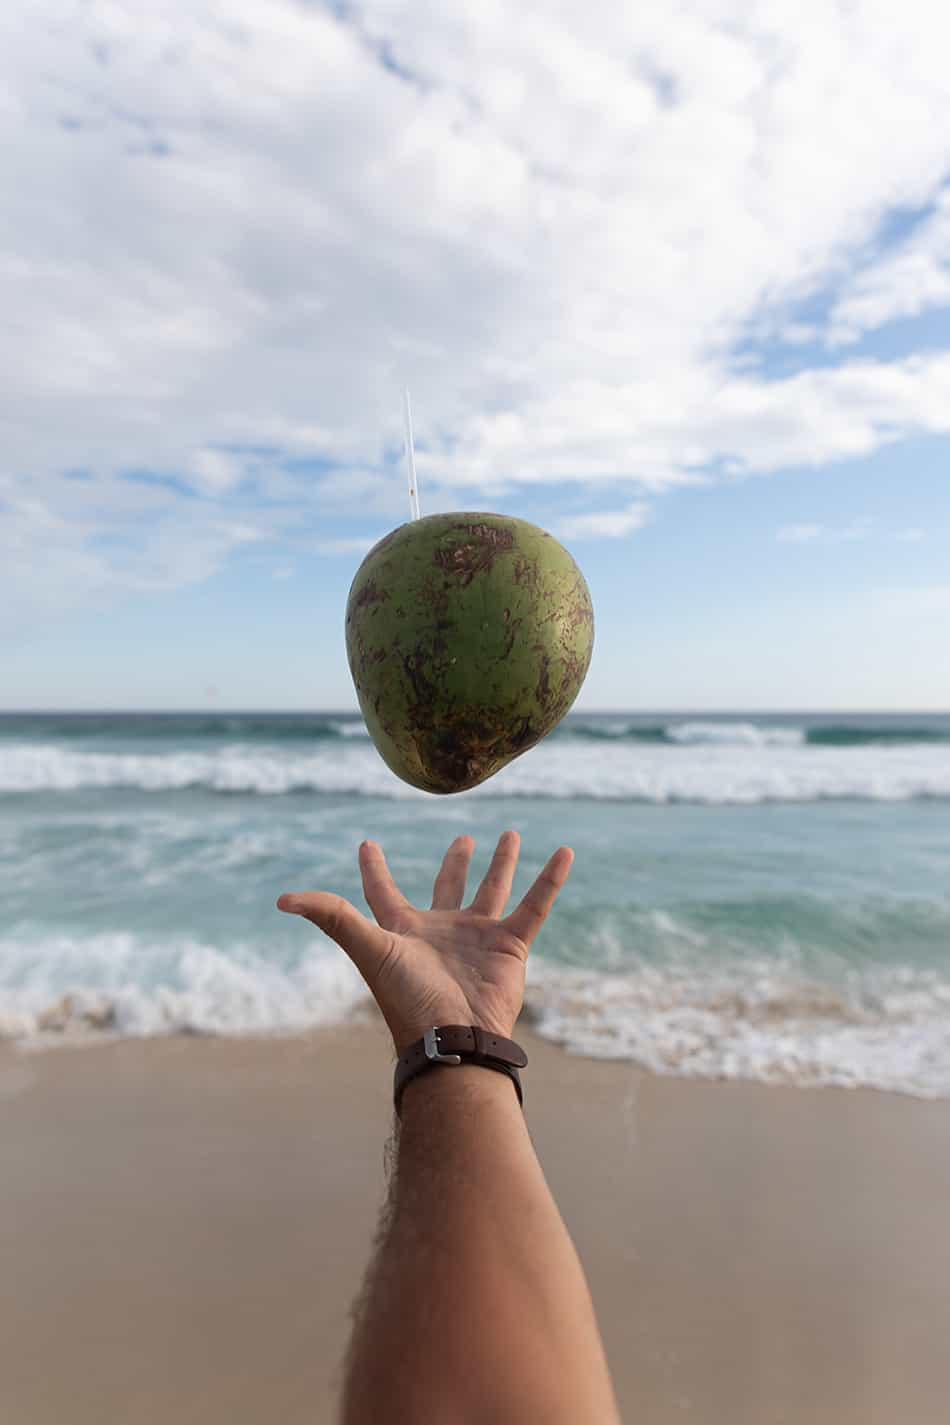 Dream of throwing a coconut